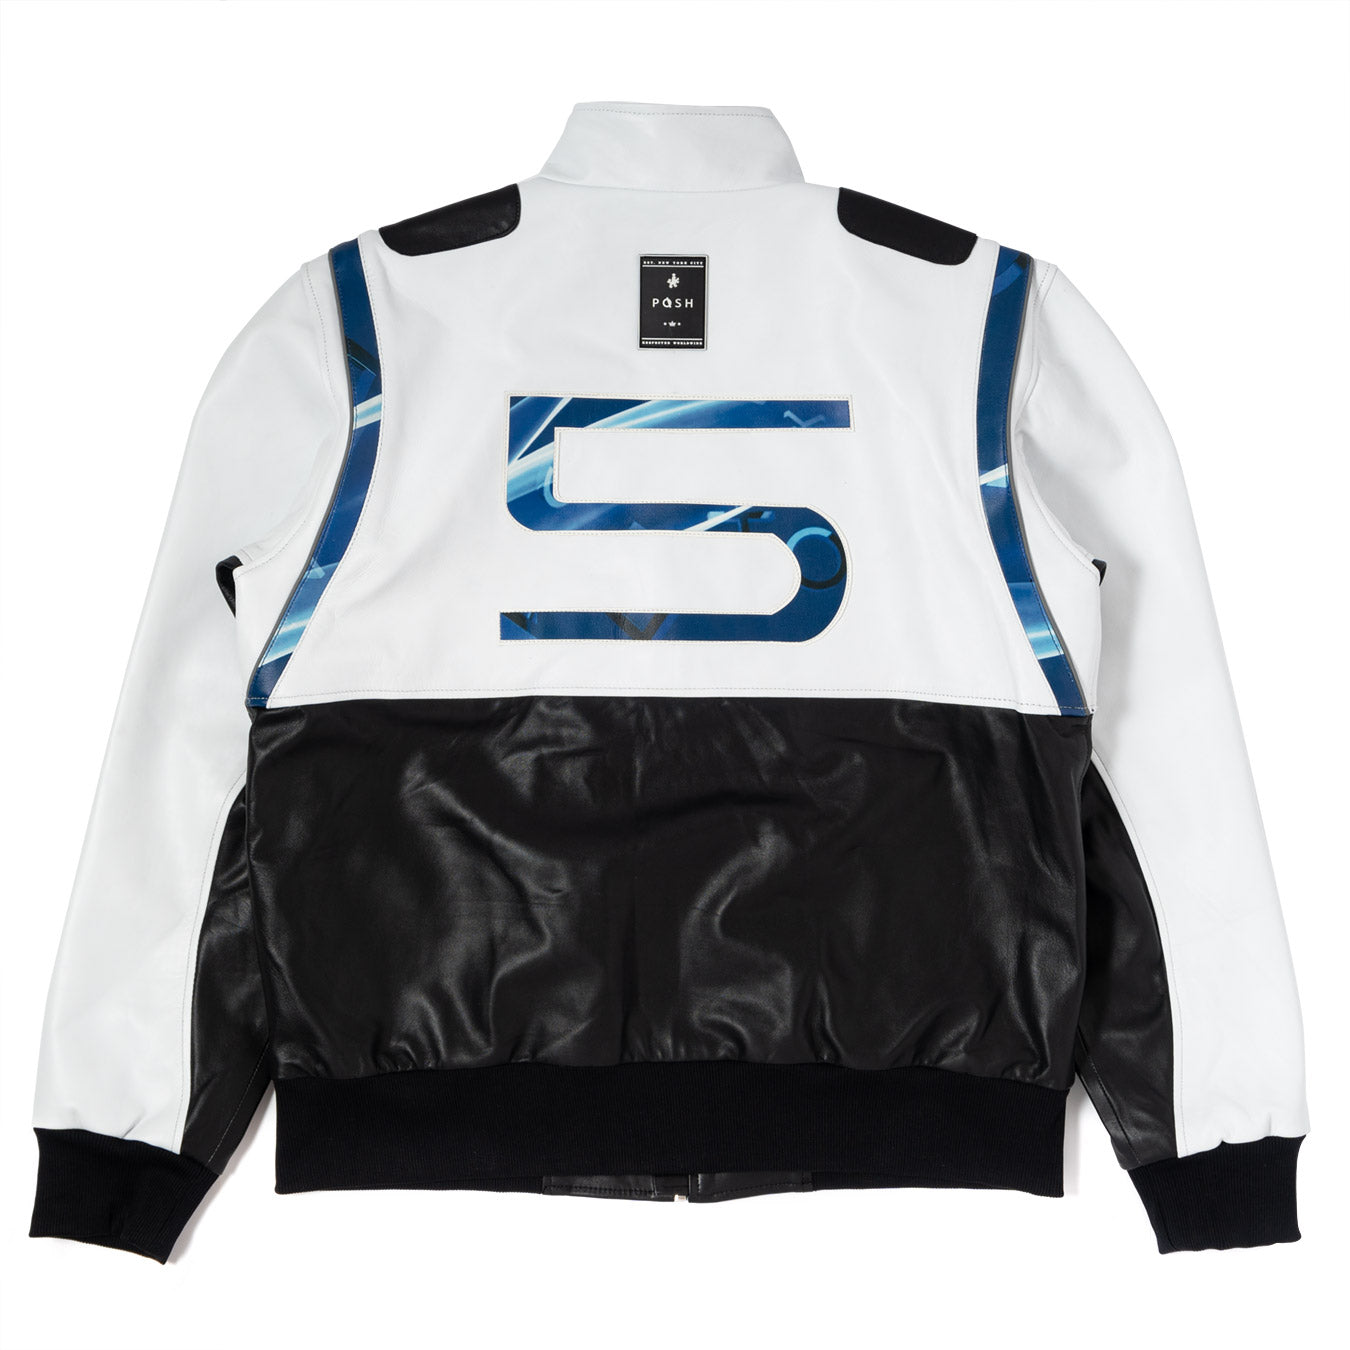 Posh PlayStation 5 Two Tone Premium Lamb Leather Jacket